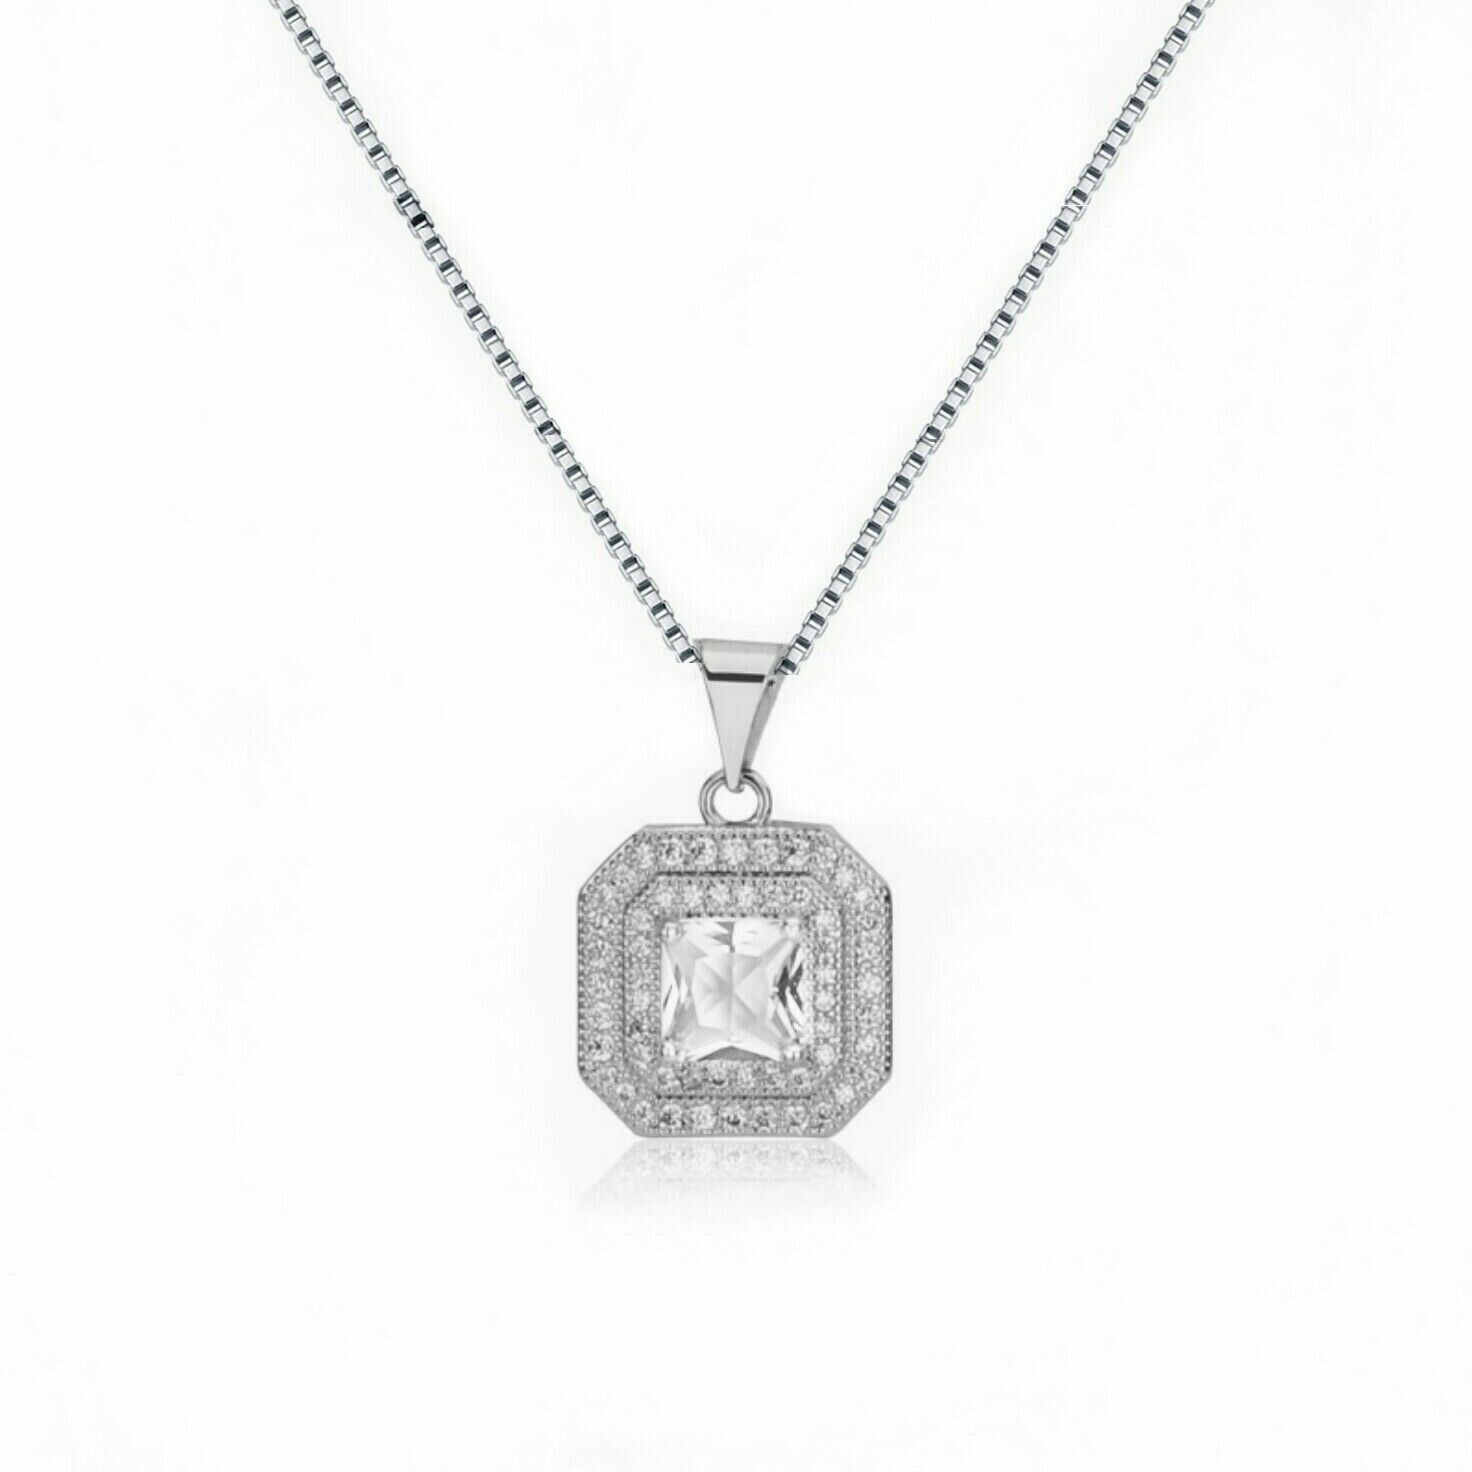 Jewellery - Square Stone Pendant 925 Sterling Silver Chain Necklace Womens Jewellery Gift UK